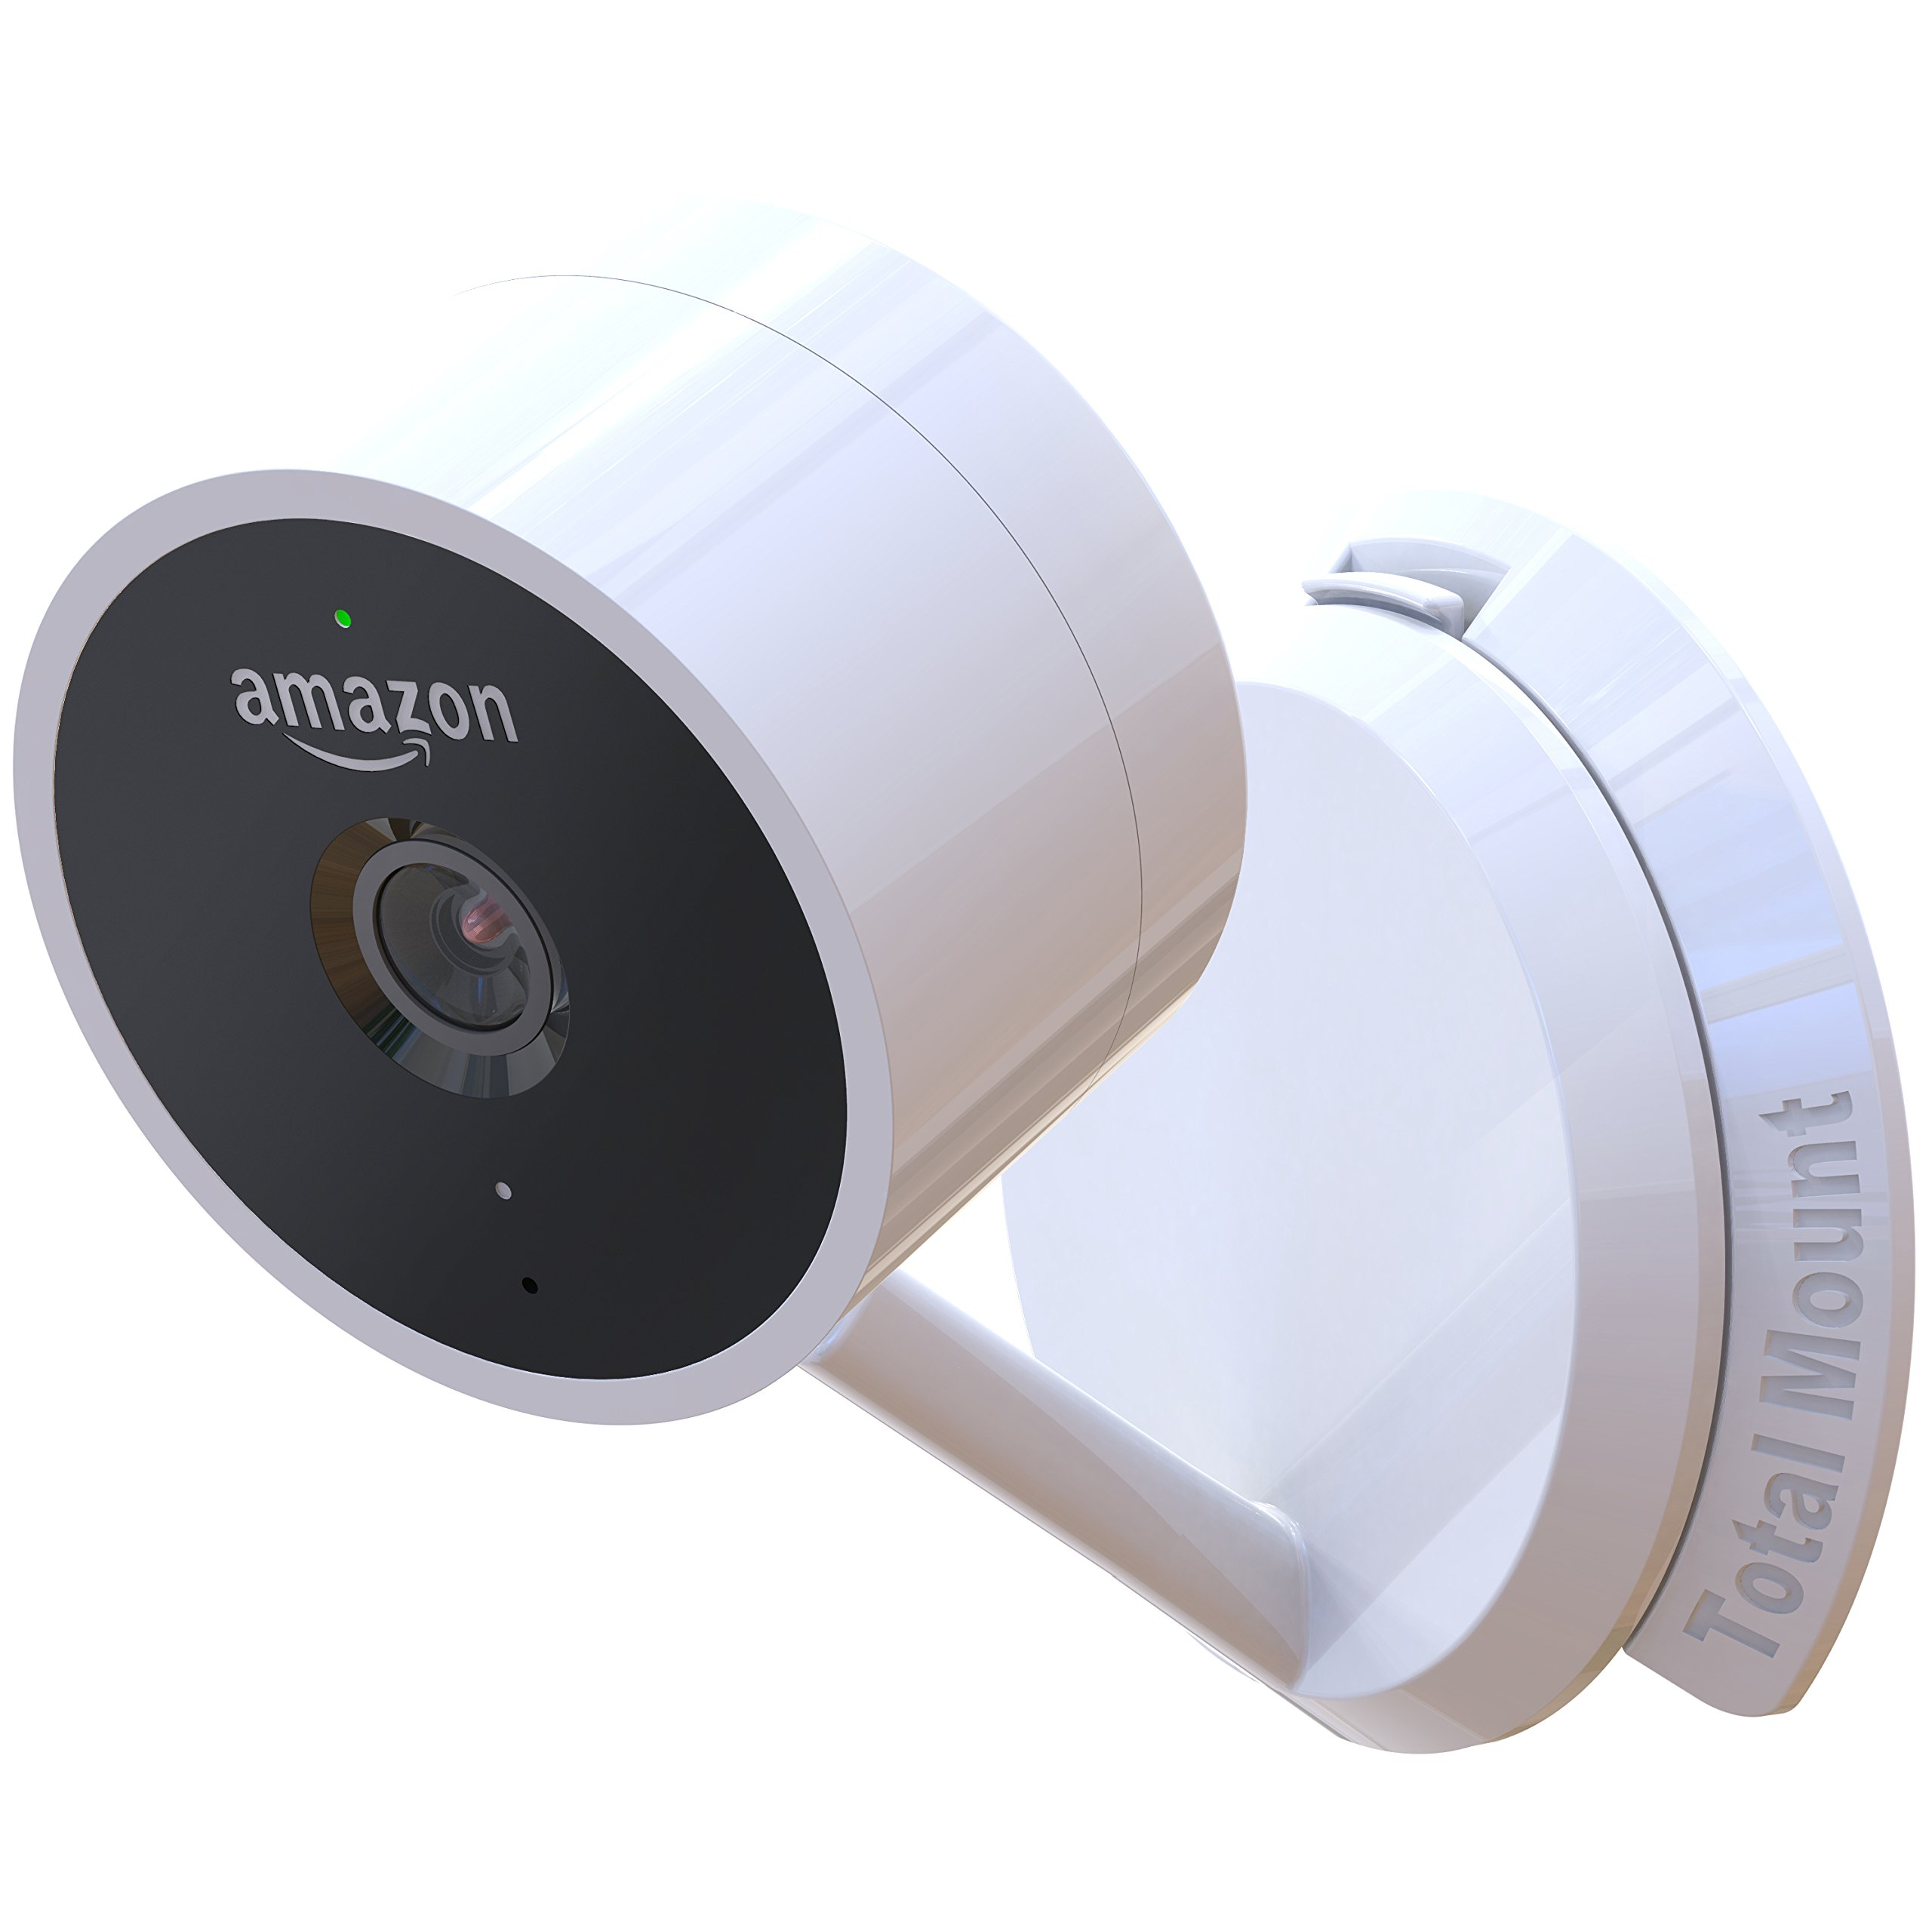 TotalMount Hole-Free Mount for Amazon Cloud Cam (Eliminates The Need to Drill Holes in Your Wall)